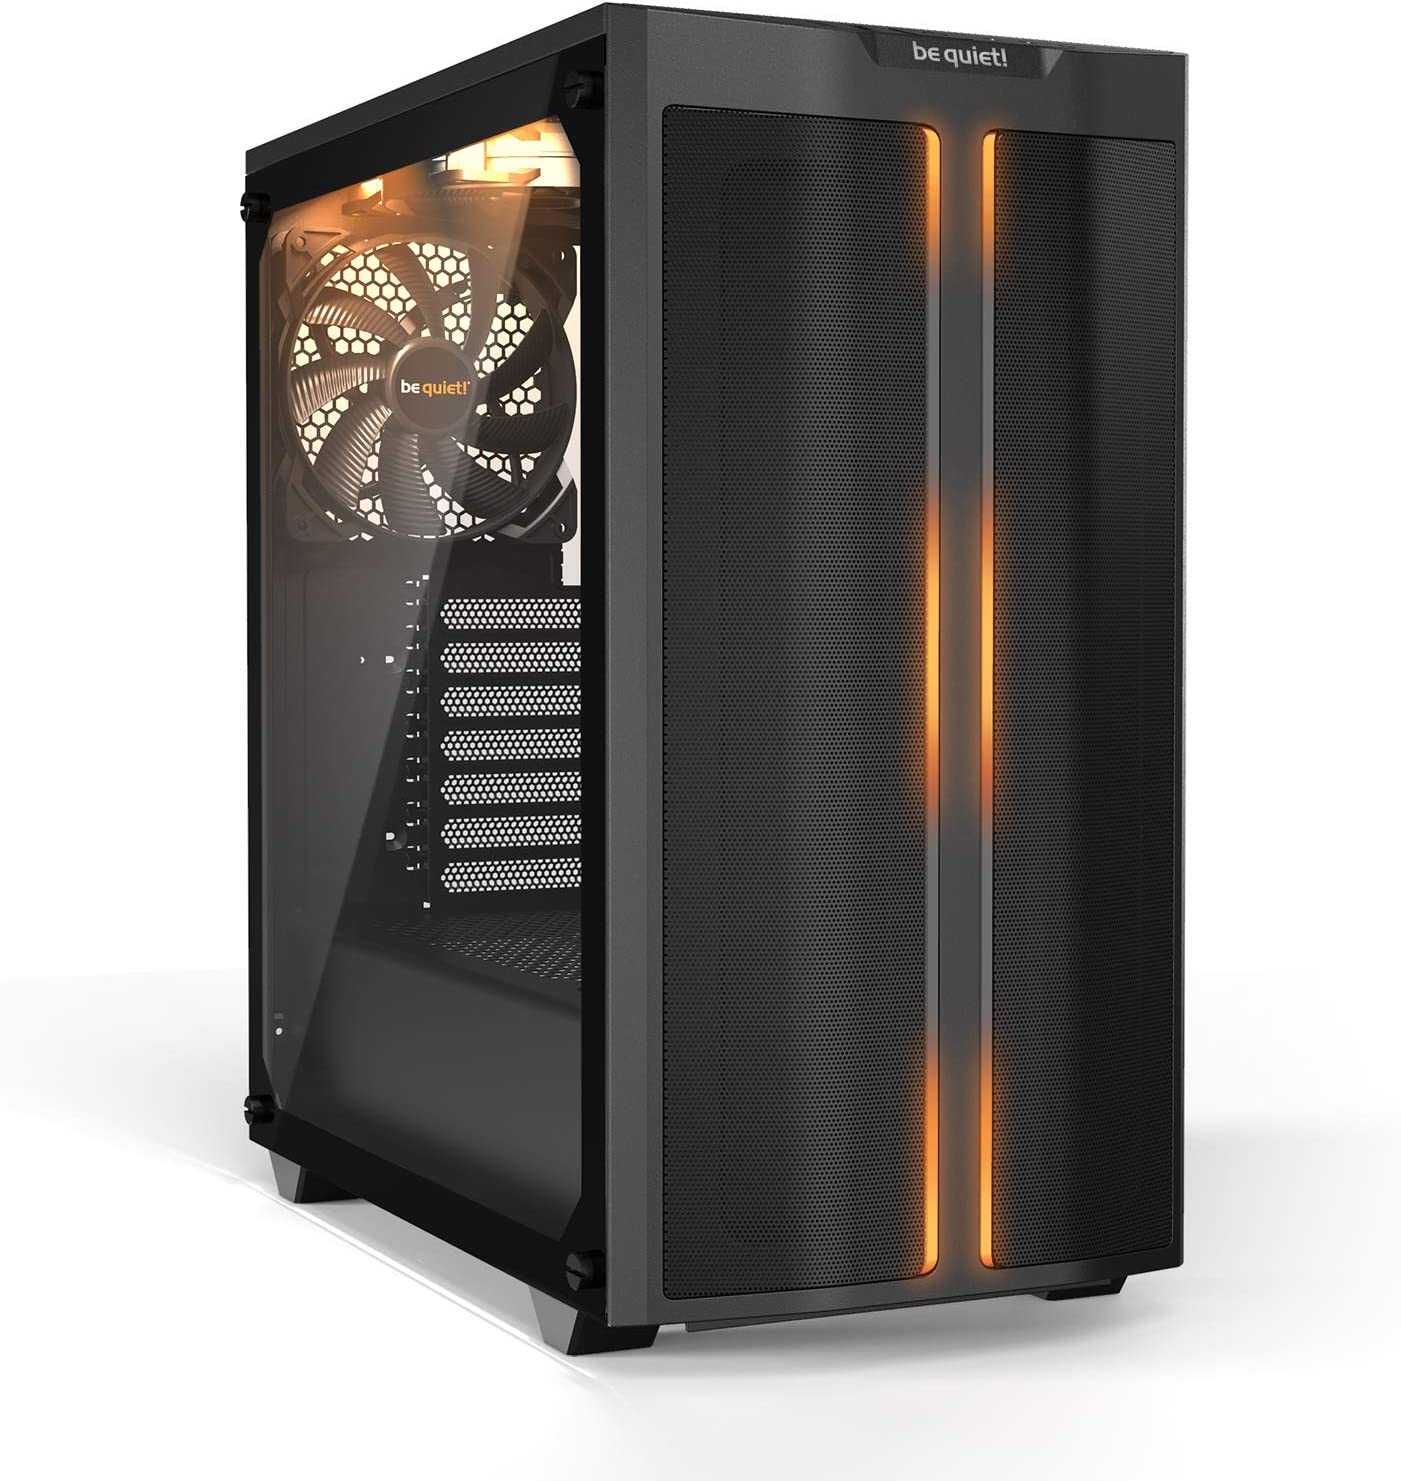 gabinete atx mid tower Pure Base 500DX be quiet!